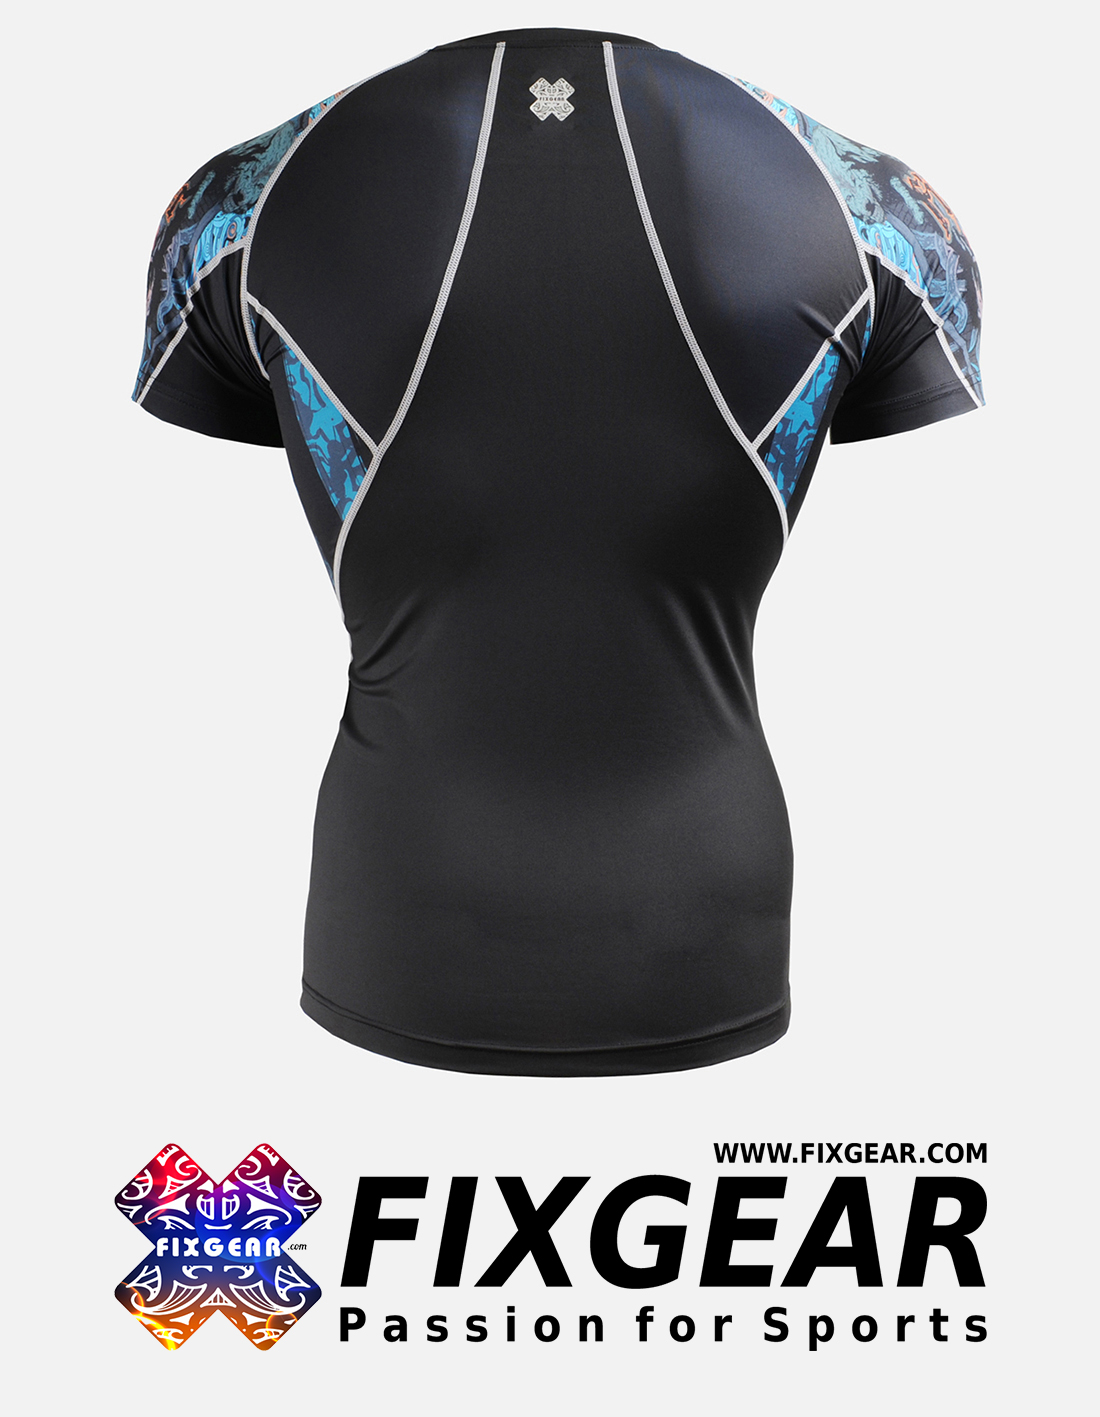 FIXGEAR C2S-B74 Compression Base Layer Shirt Short Sleeve